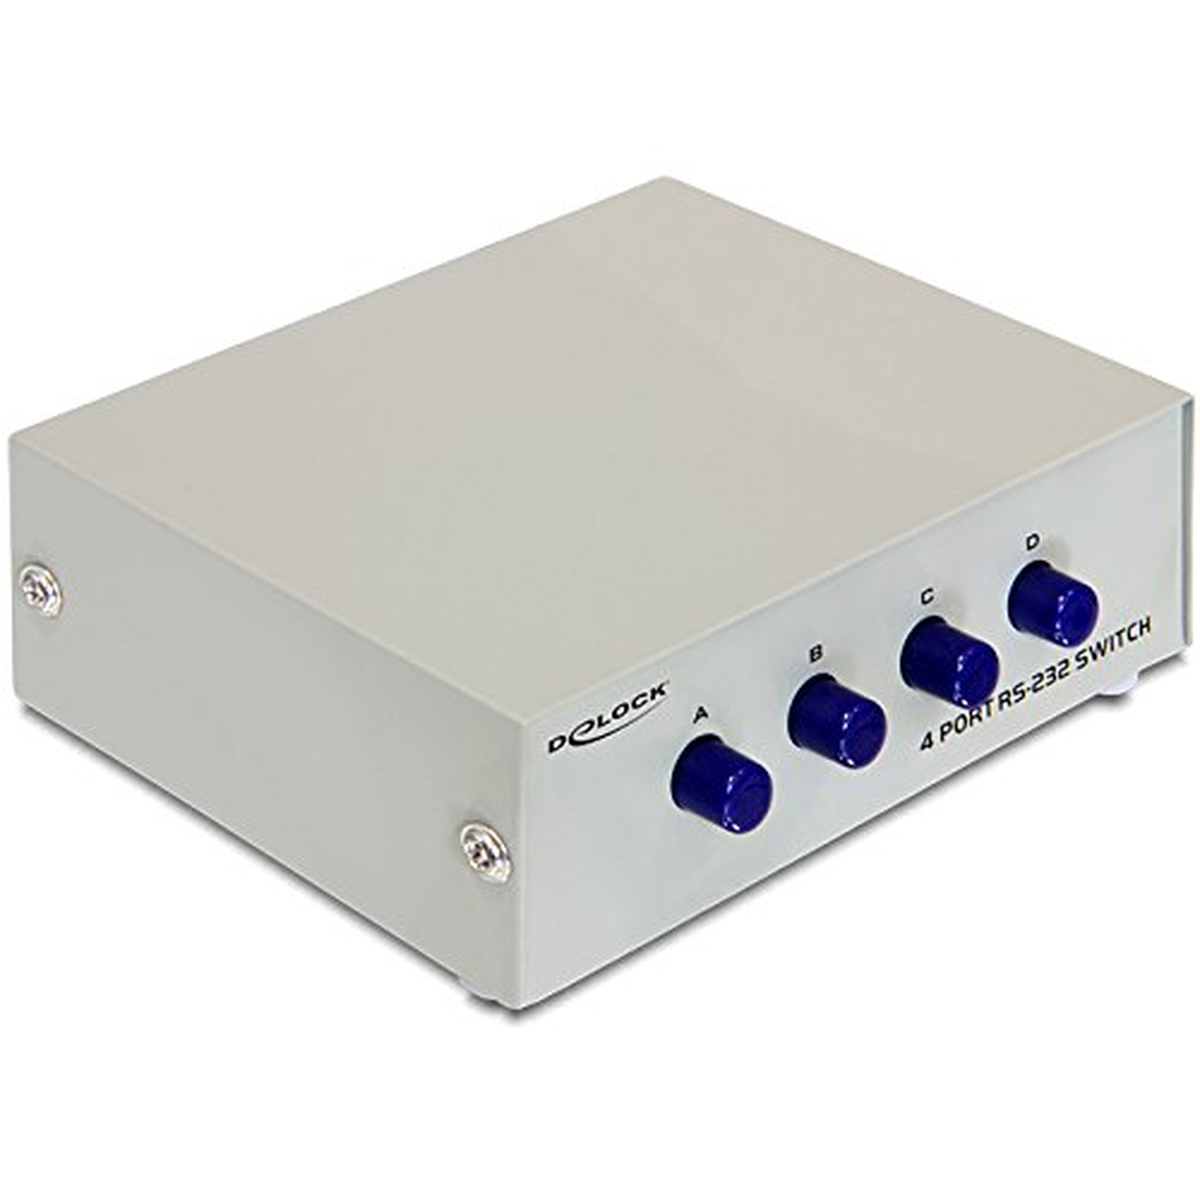 DeLOCK Seriell Switch RS-232 4-Port manuell